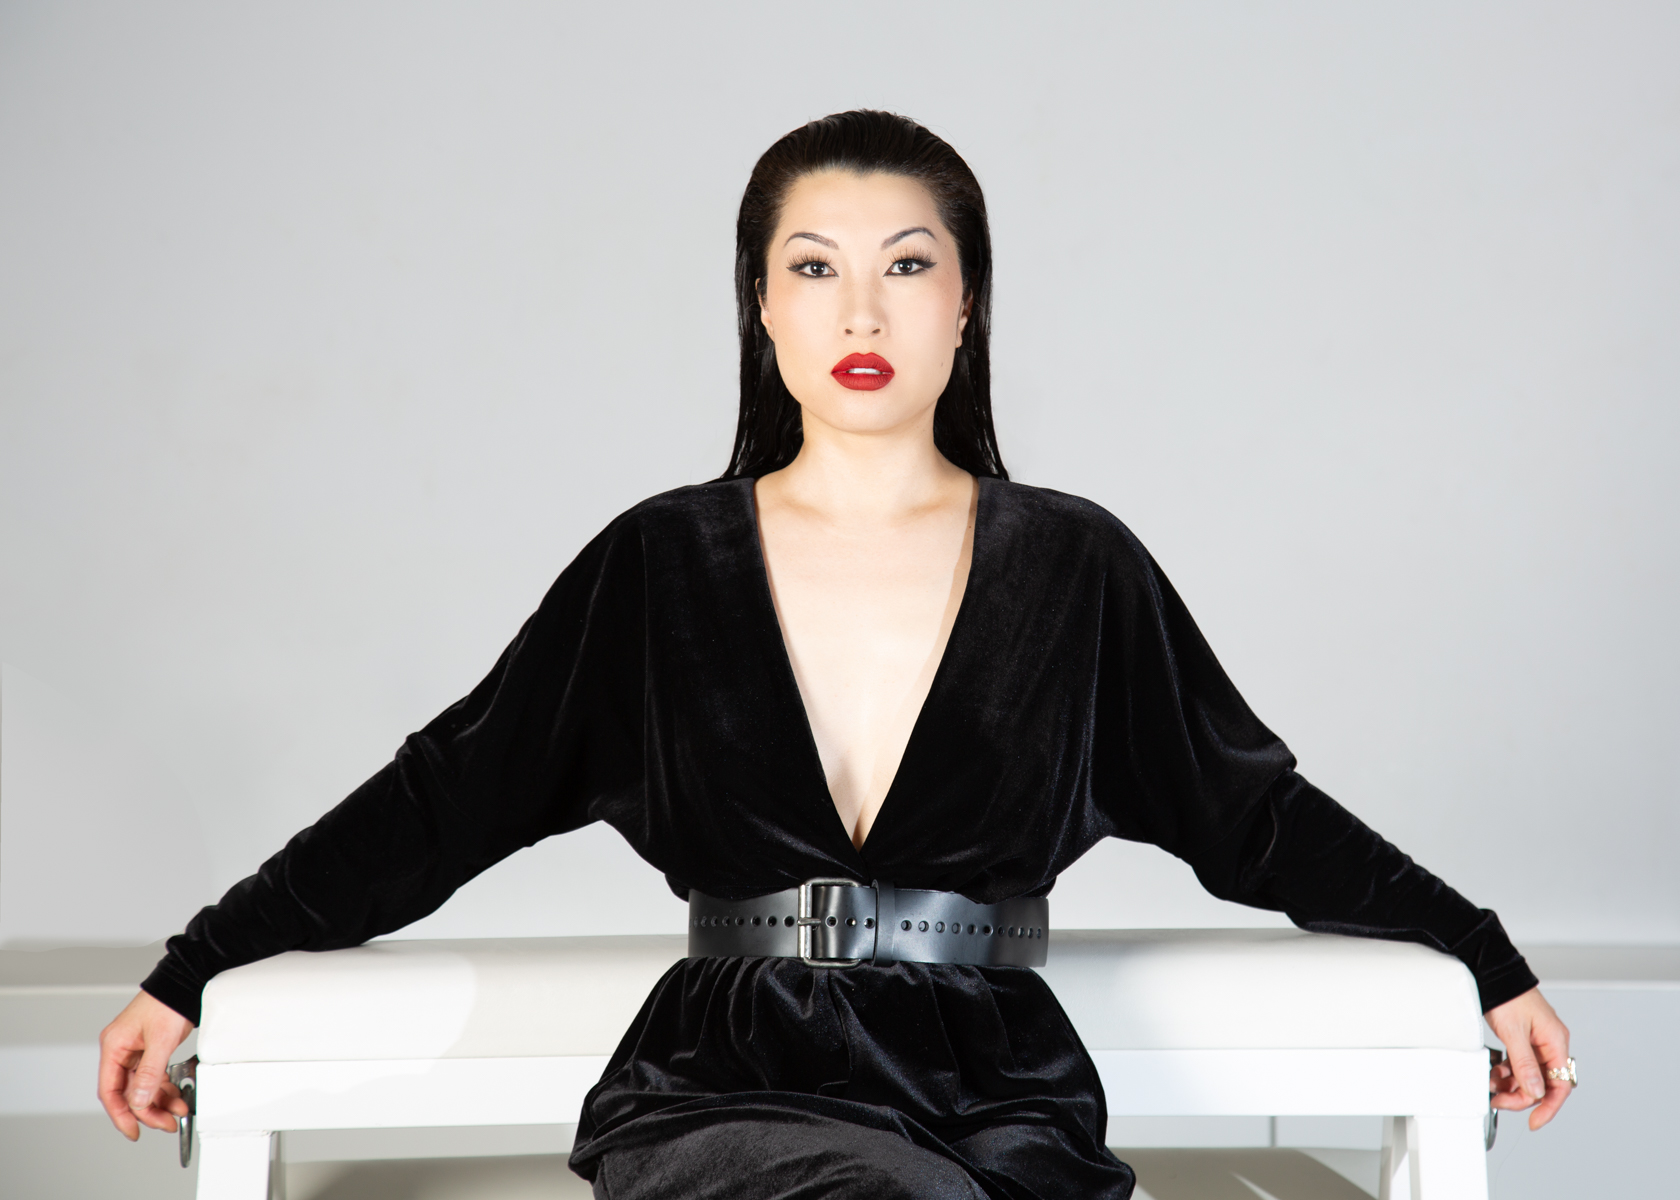 a person wearing a black dress with slicked back black hair seated against a white background